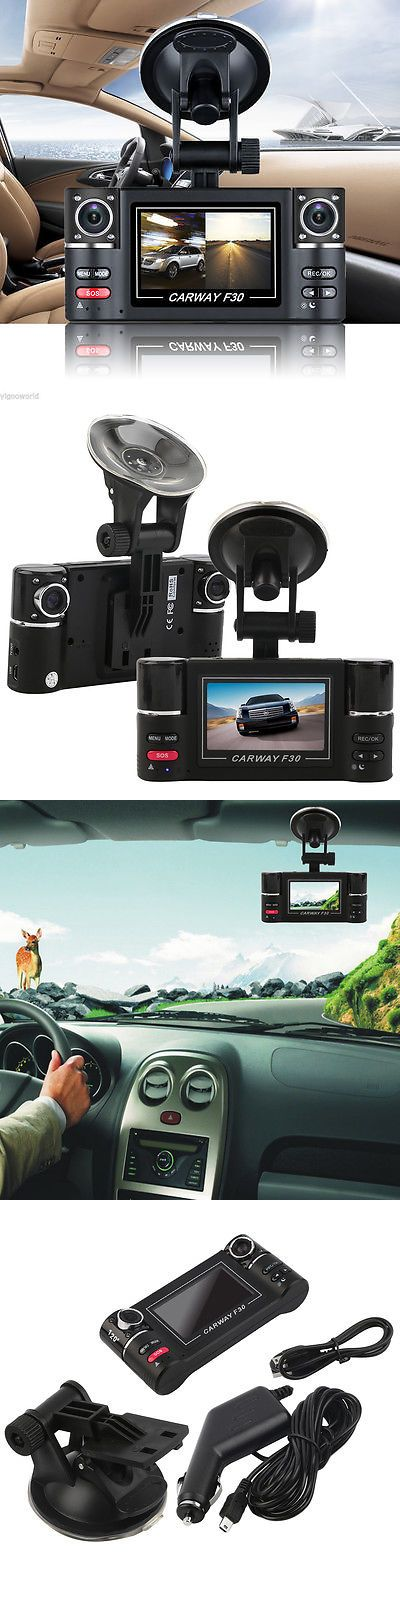 Digital Video Recorders Cards: Hd 1080P Car Dvr Vehicle Camera Digital Video Recorder Dash Cam Dual Lens 2.7 -> BUY IT NOW ONLY: $37.59 on eBay!